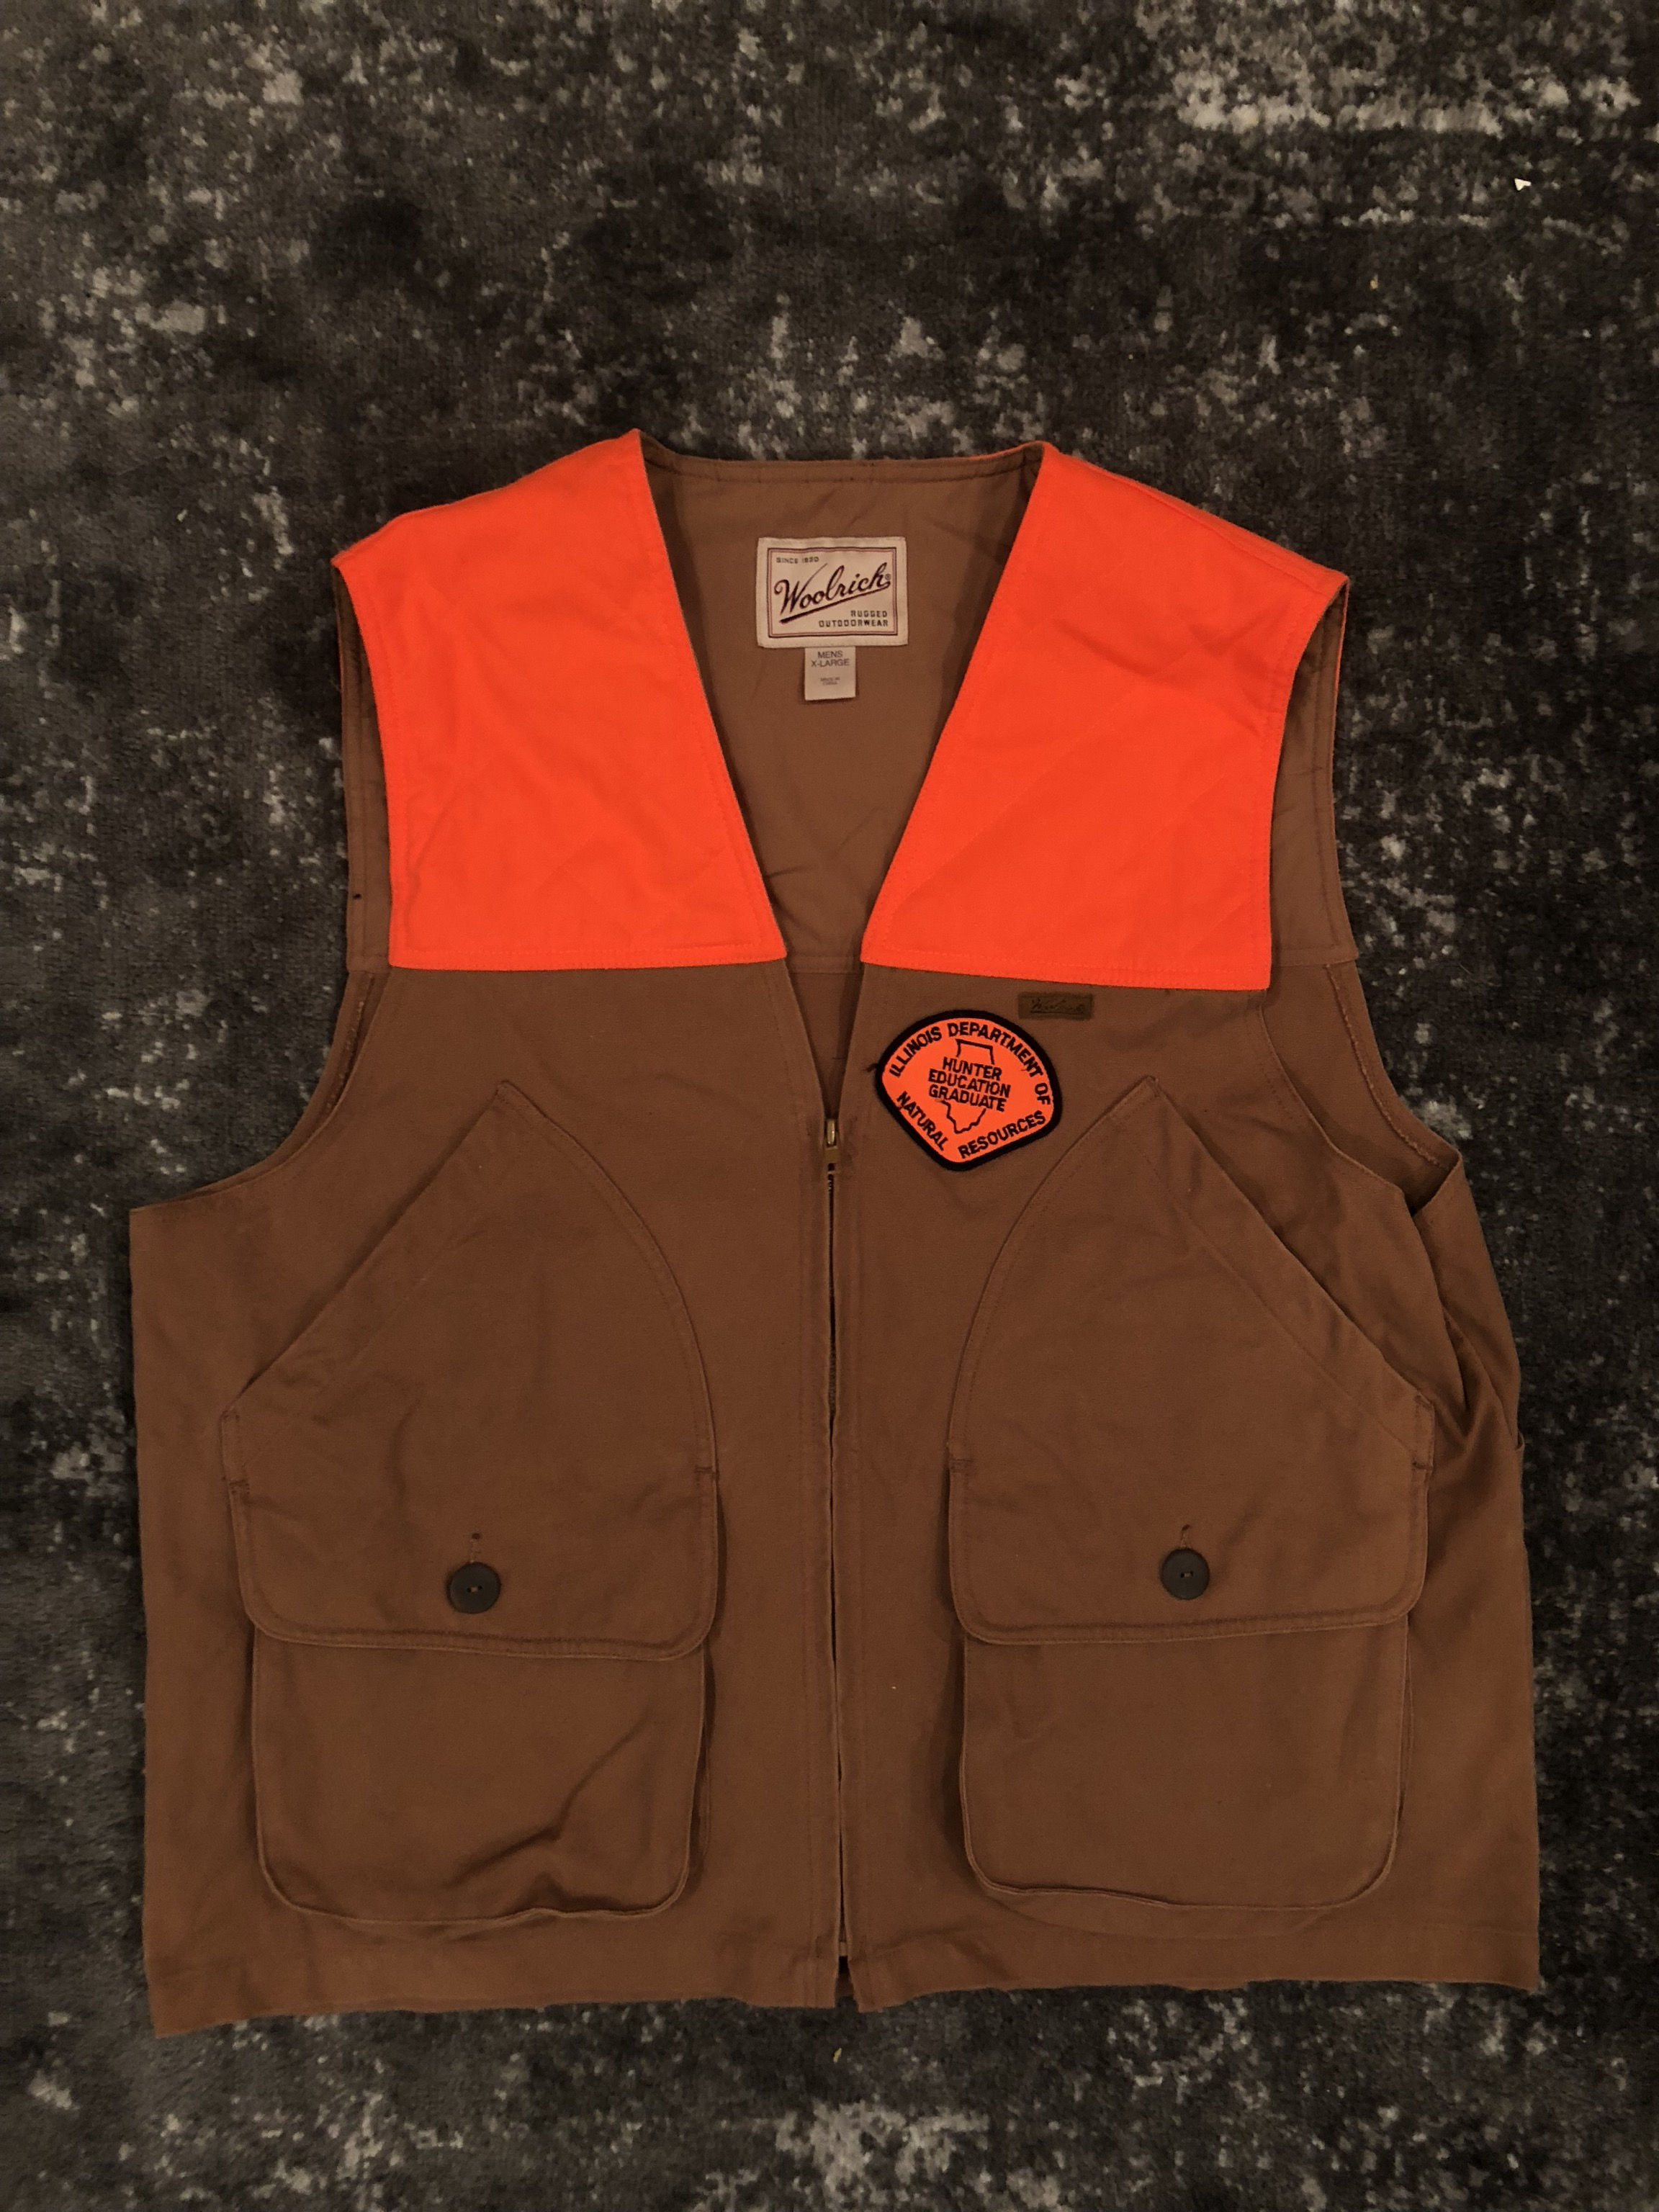 b388ab9aab62f Woolrich Woolen Mills ×. Woolrich Duck Canvas Upland Hunting Vest - Size XL  ...